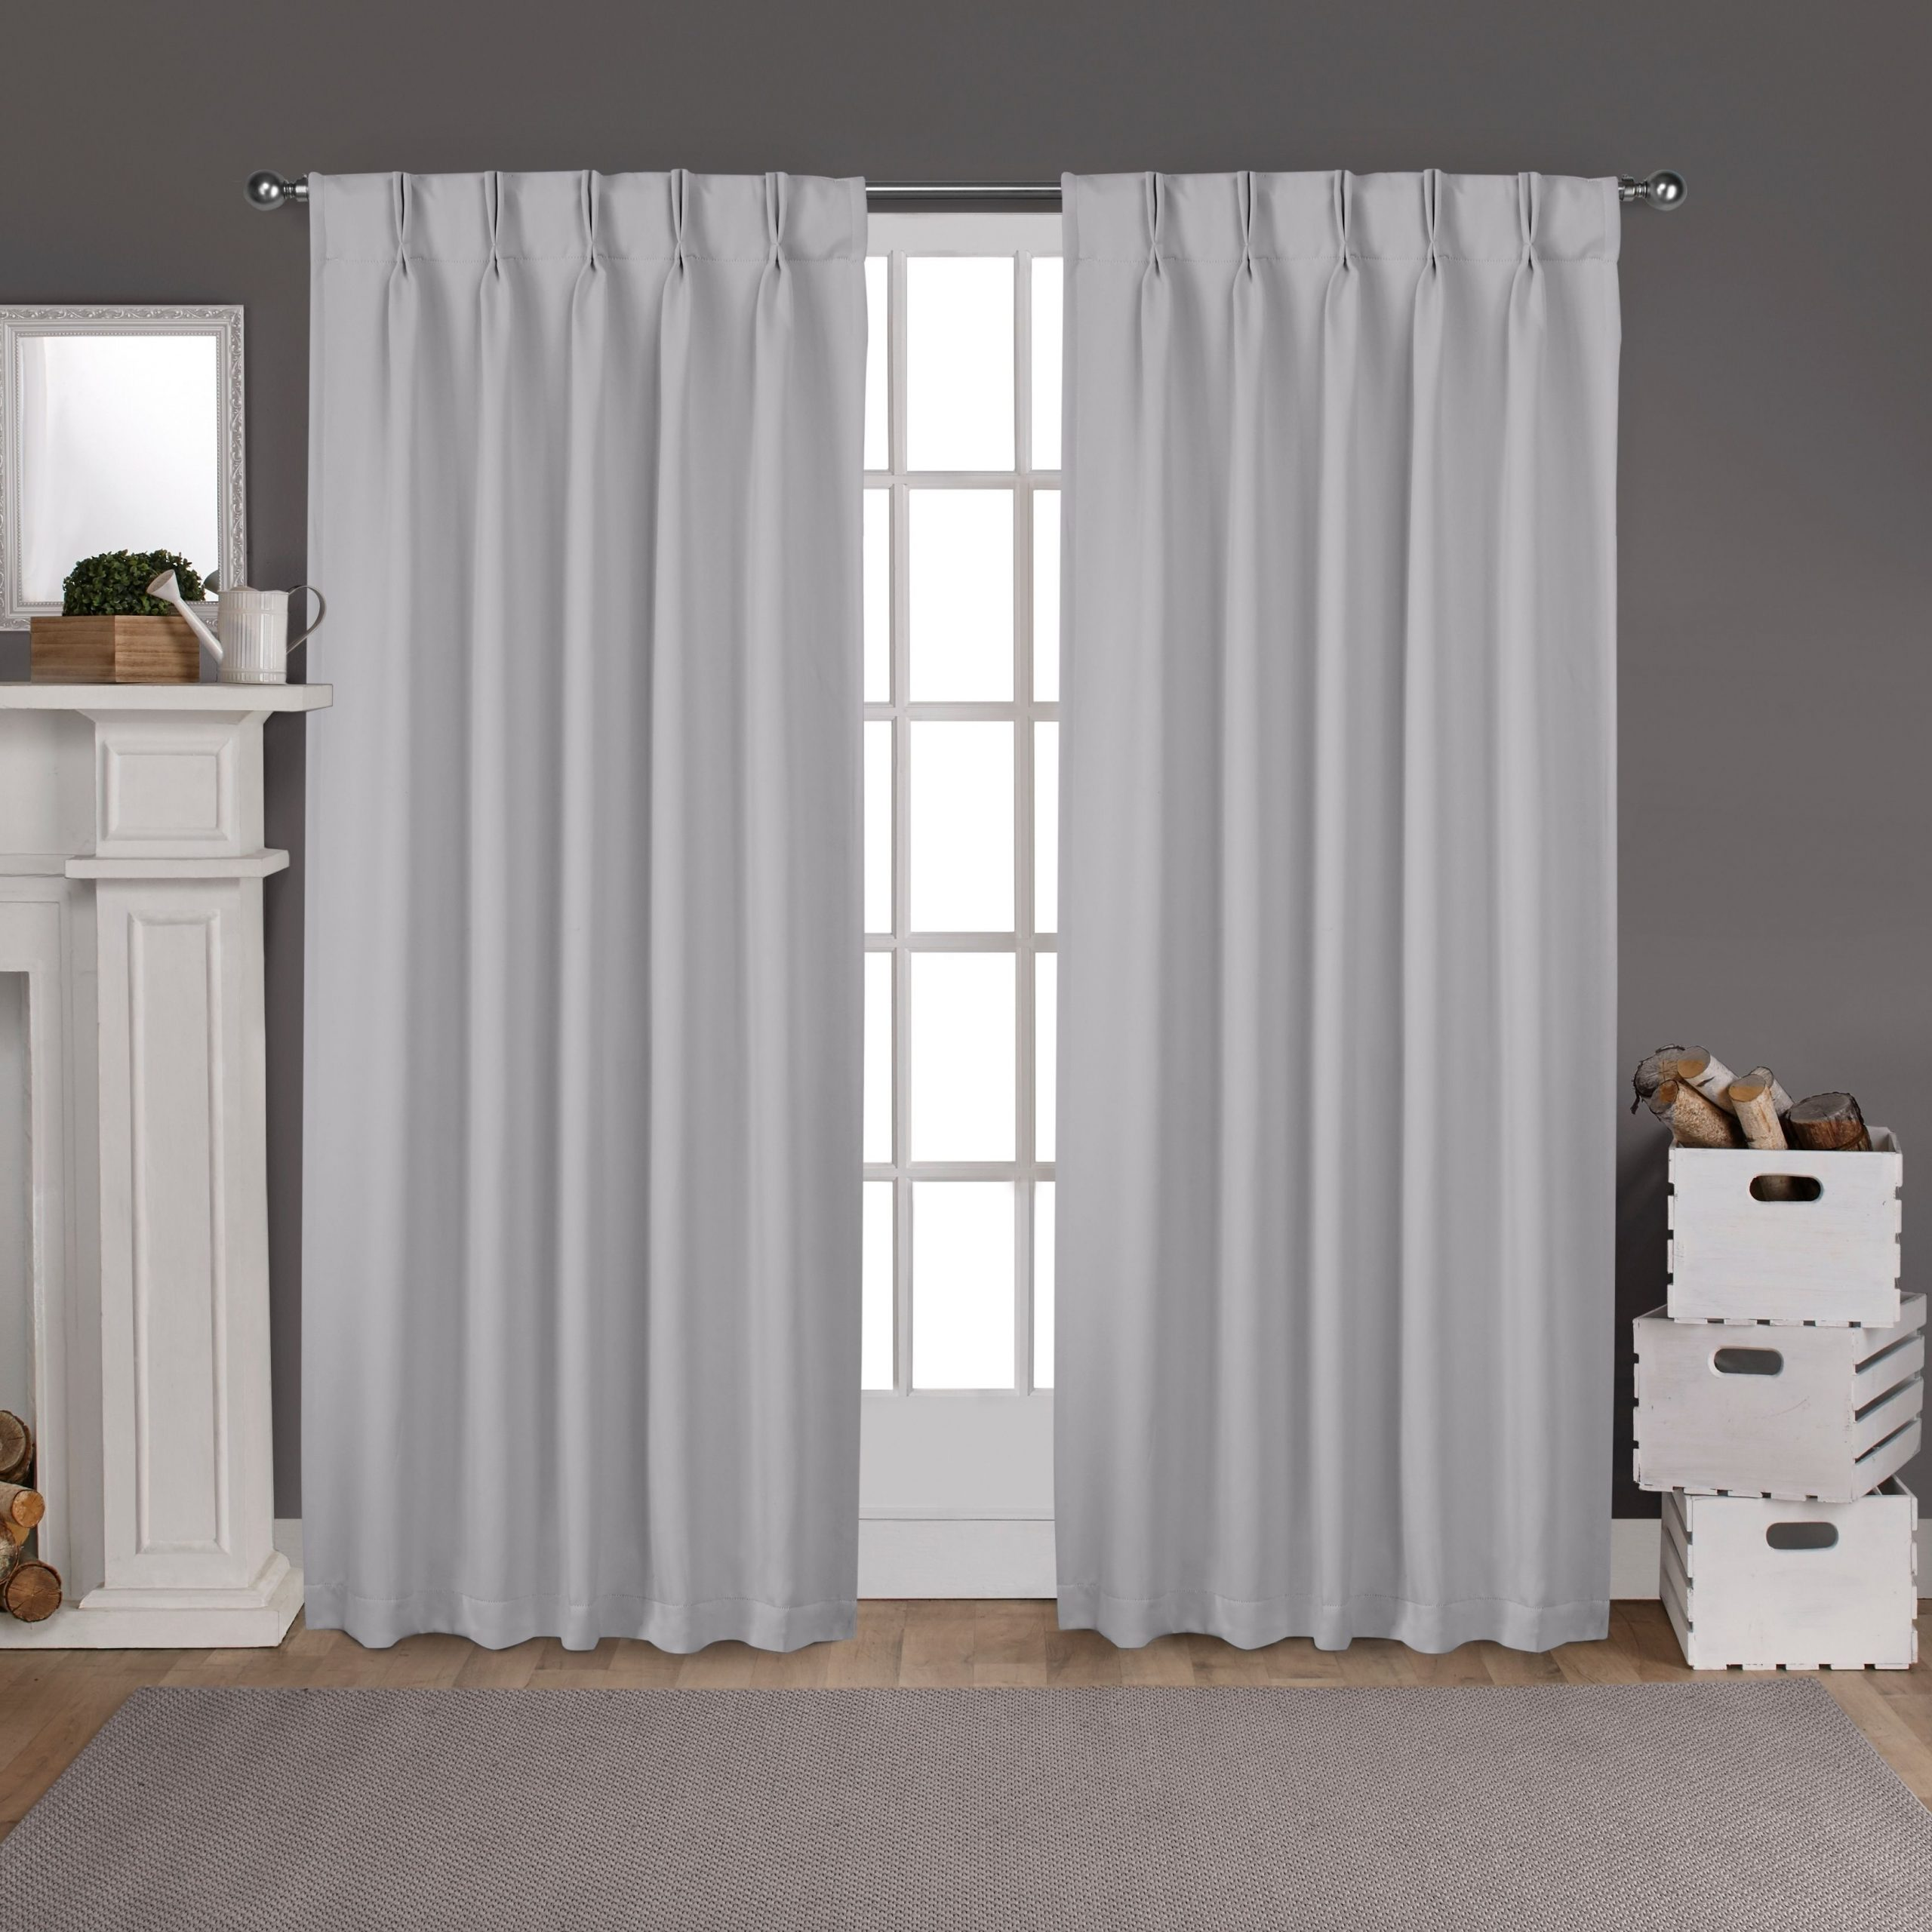 Sateen Woven Blackout Curtain Panel Pairs With Pinch Pleat Top Intended For Popular Ati Home Sateen Woven Blackout Curtain Panel Pair With Pinch (View 6 of 20)